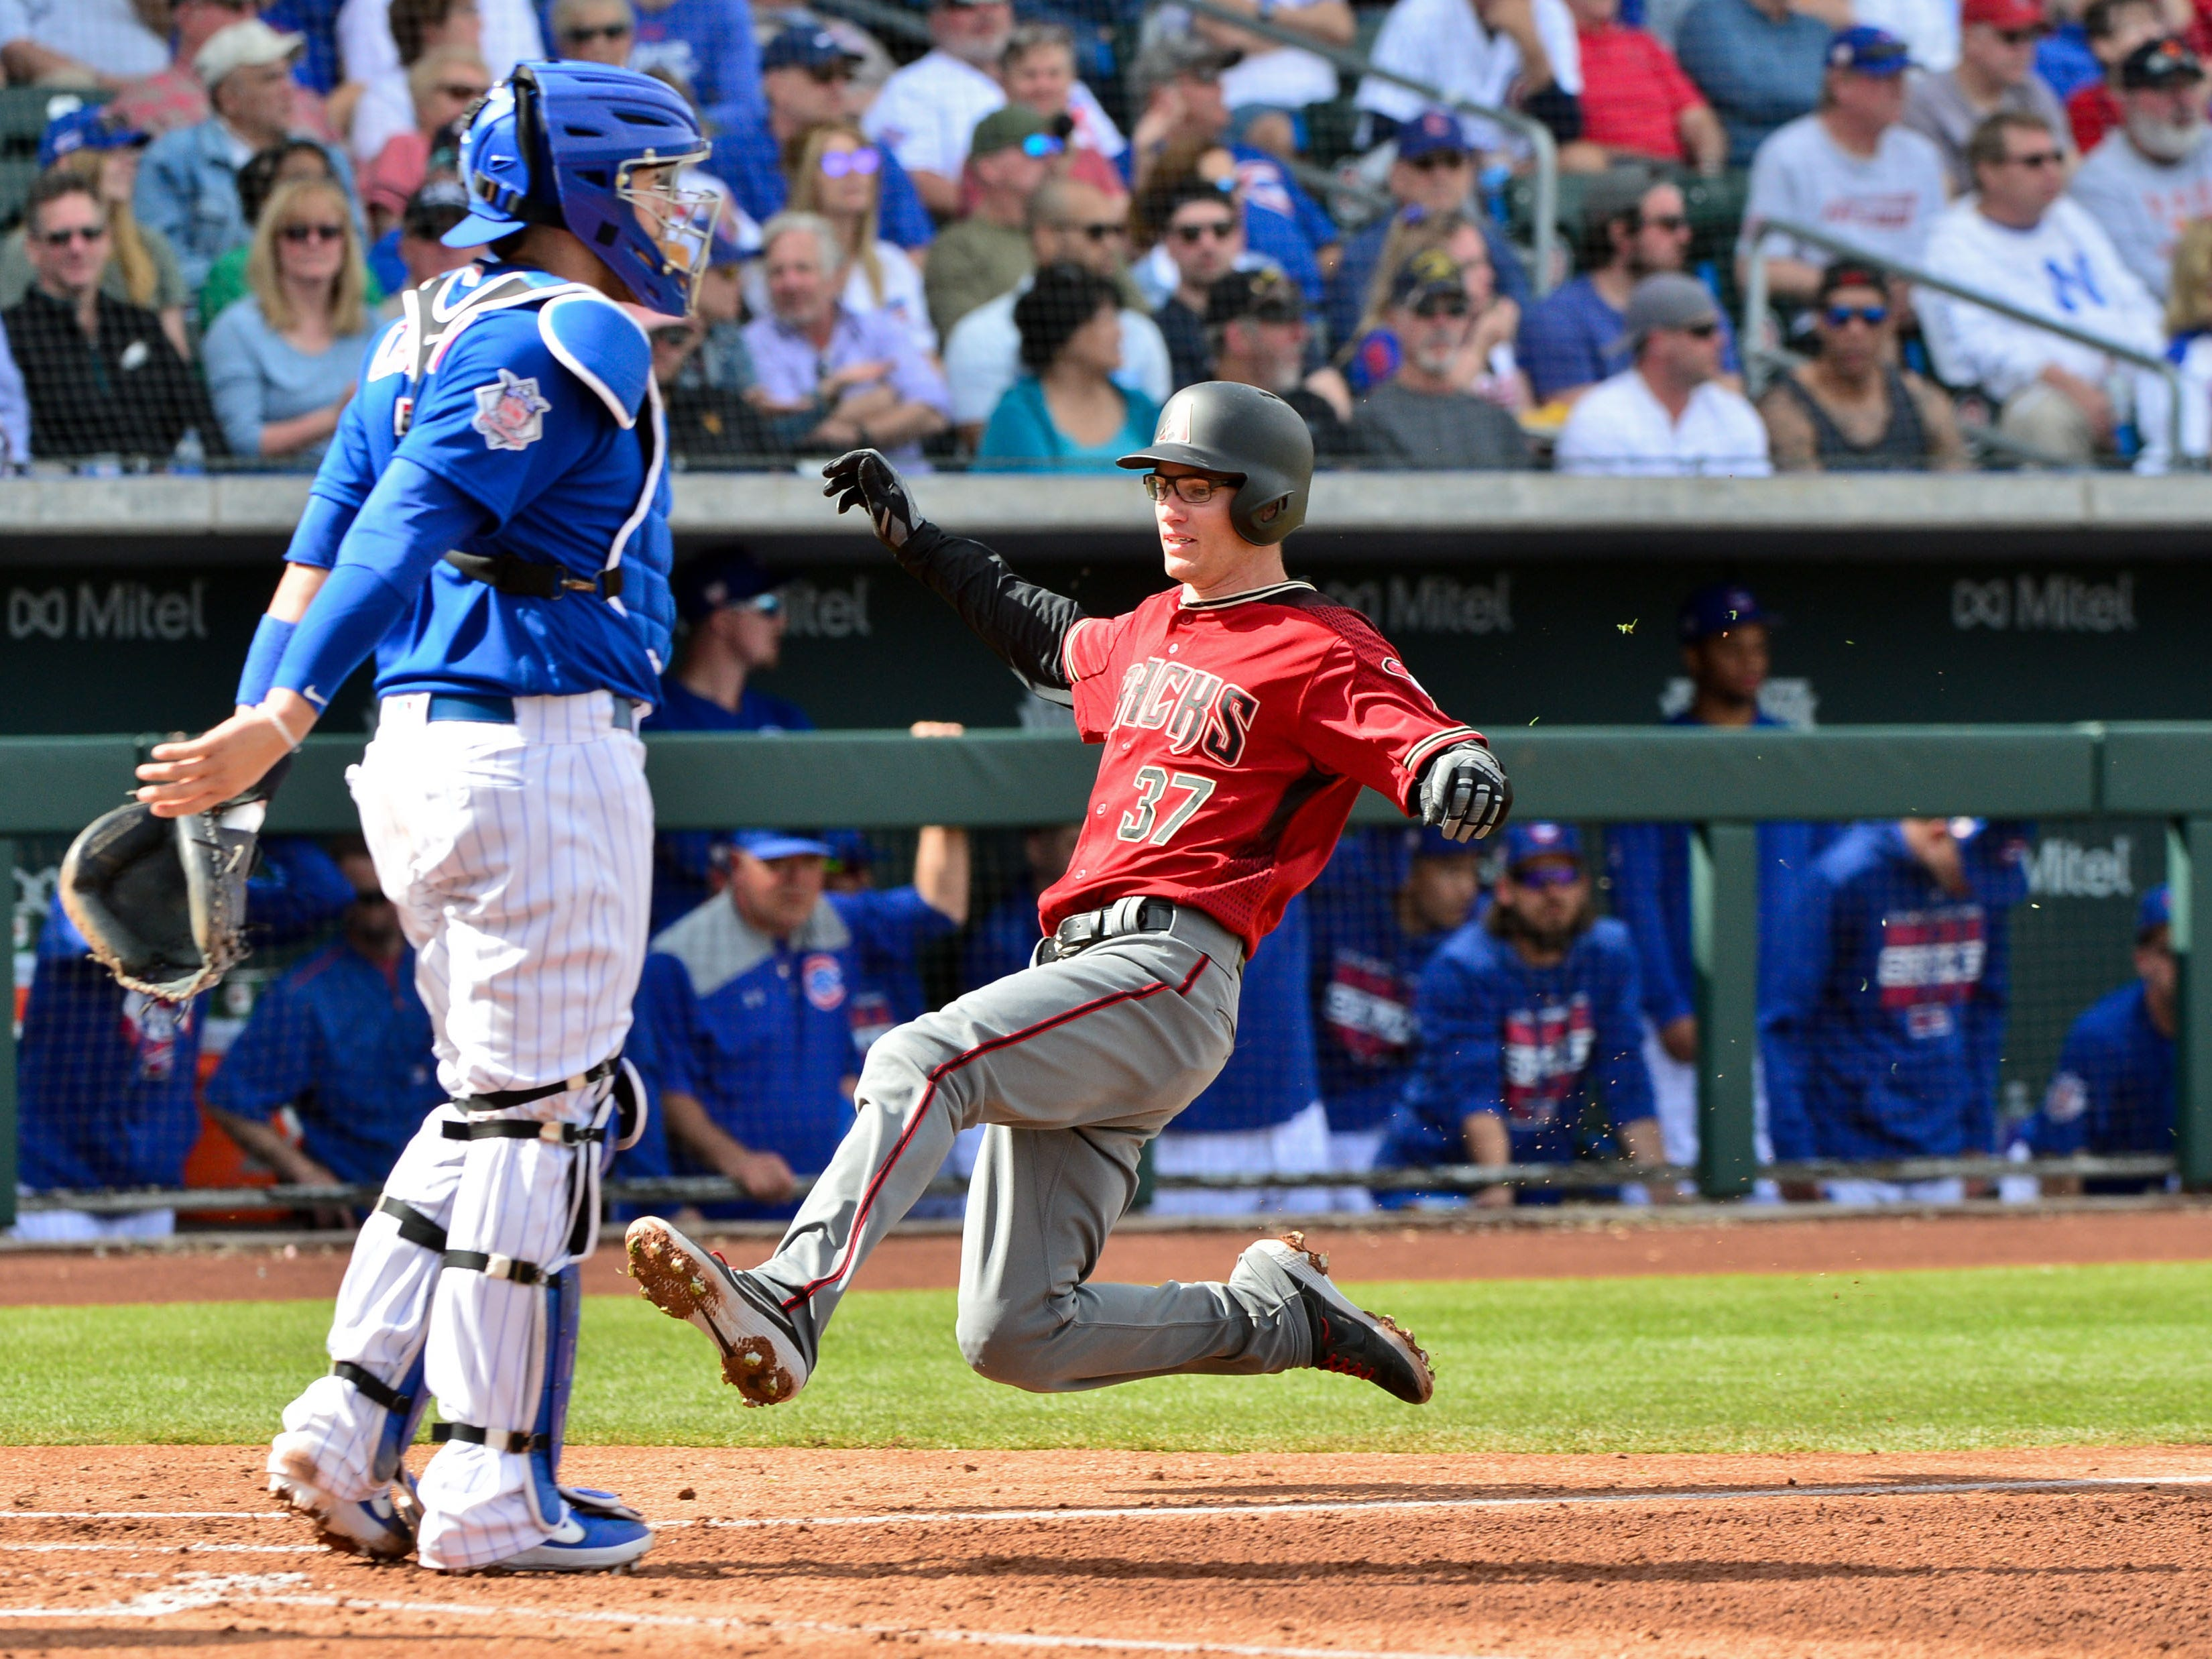 Feb 26, 2019: Arizona Diamondbacks catcher Chris Stewart (37) scores as Chicago Cubs catcher Victor Caratini (7) looks on during the second inning at Sloan Park.